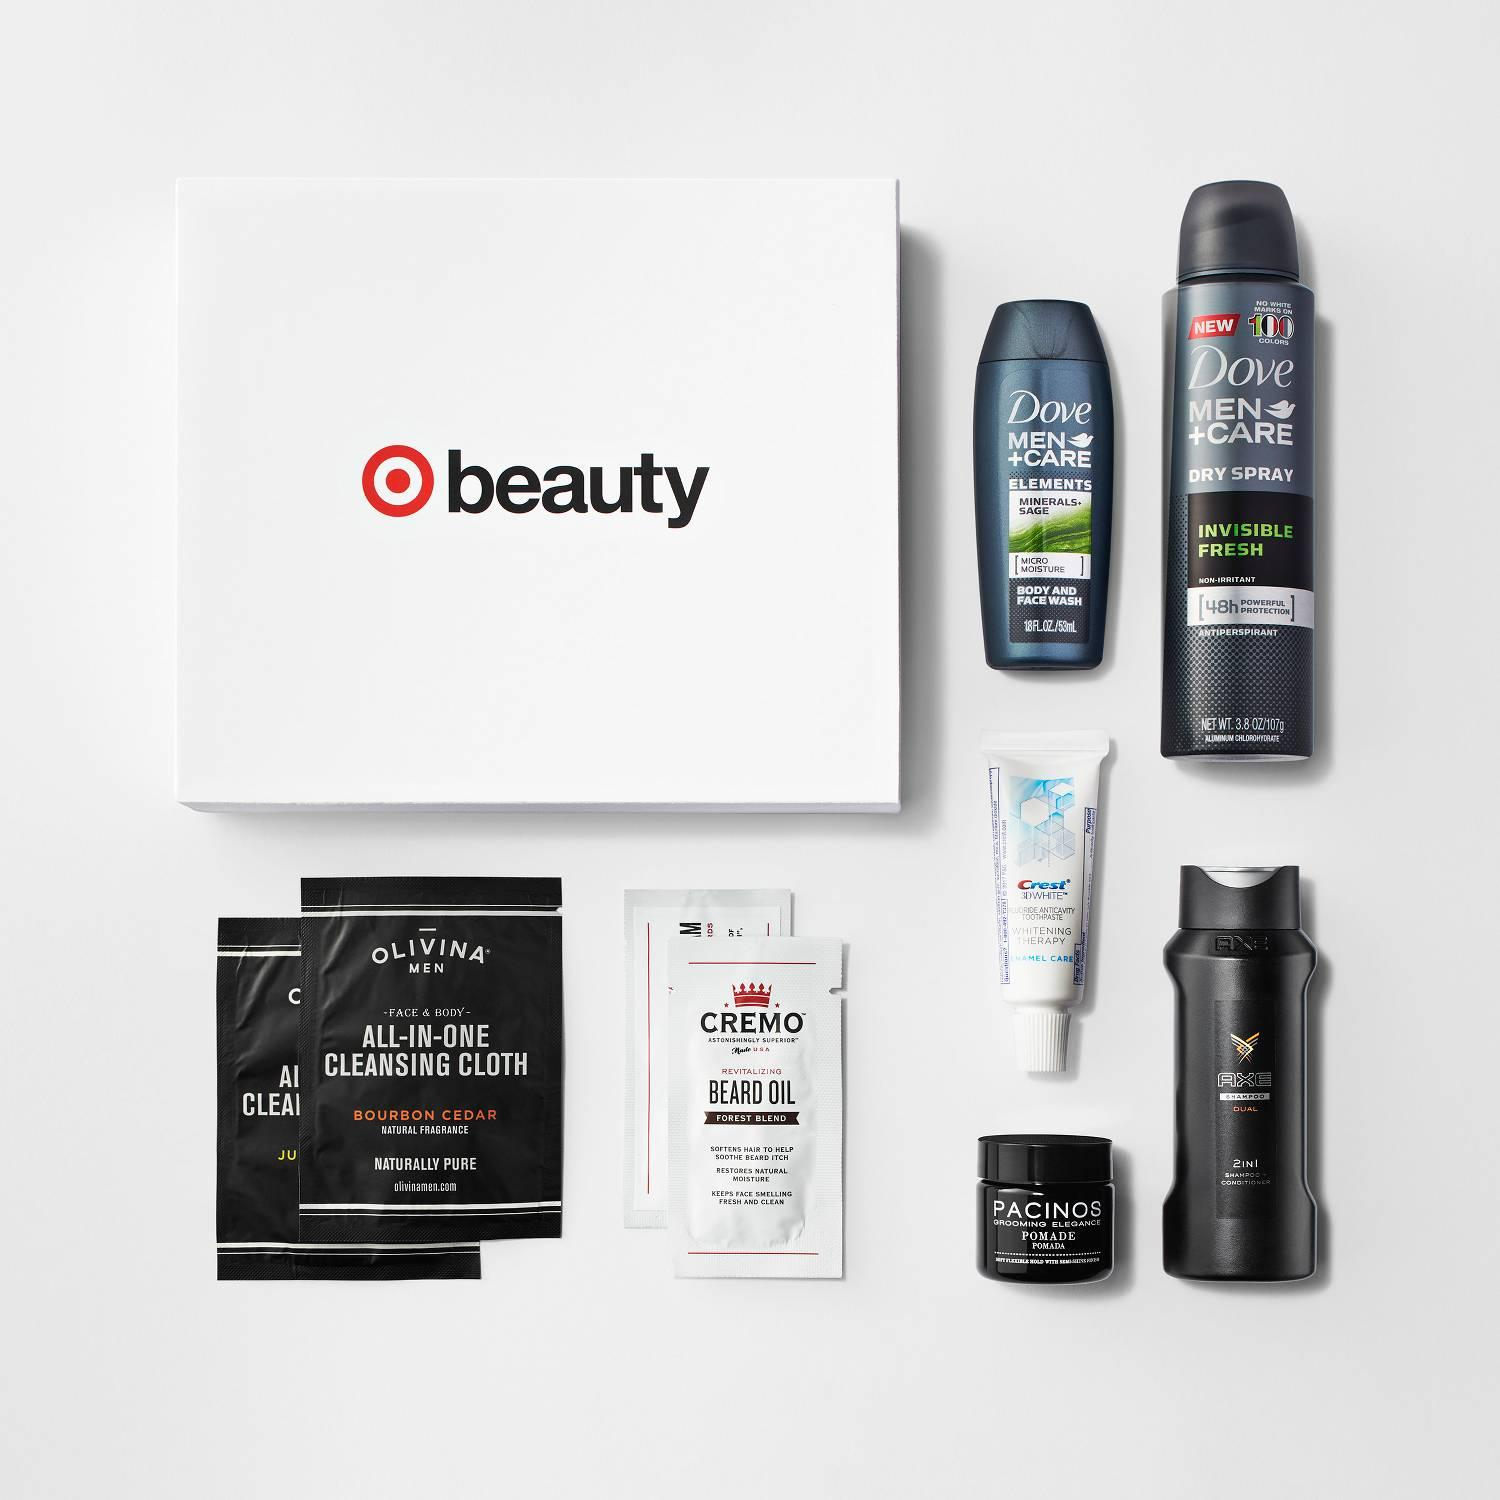 Target 7-Piece September Beauty Box for $7 Shipped